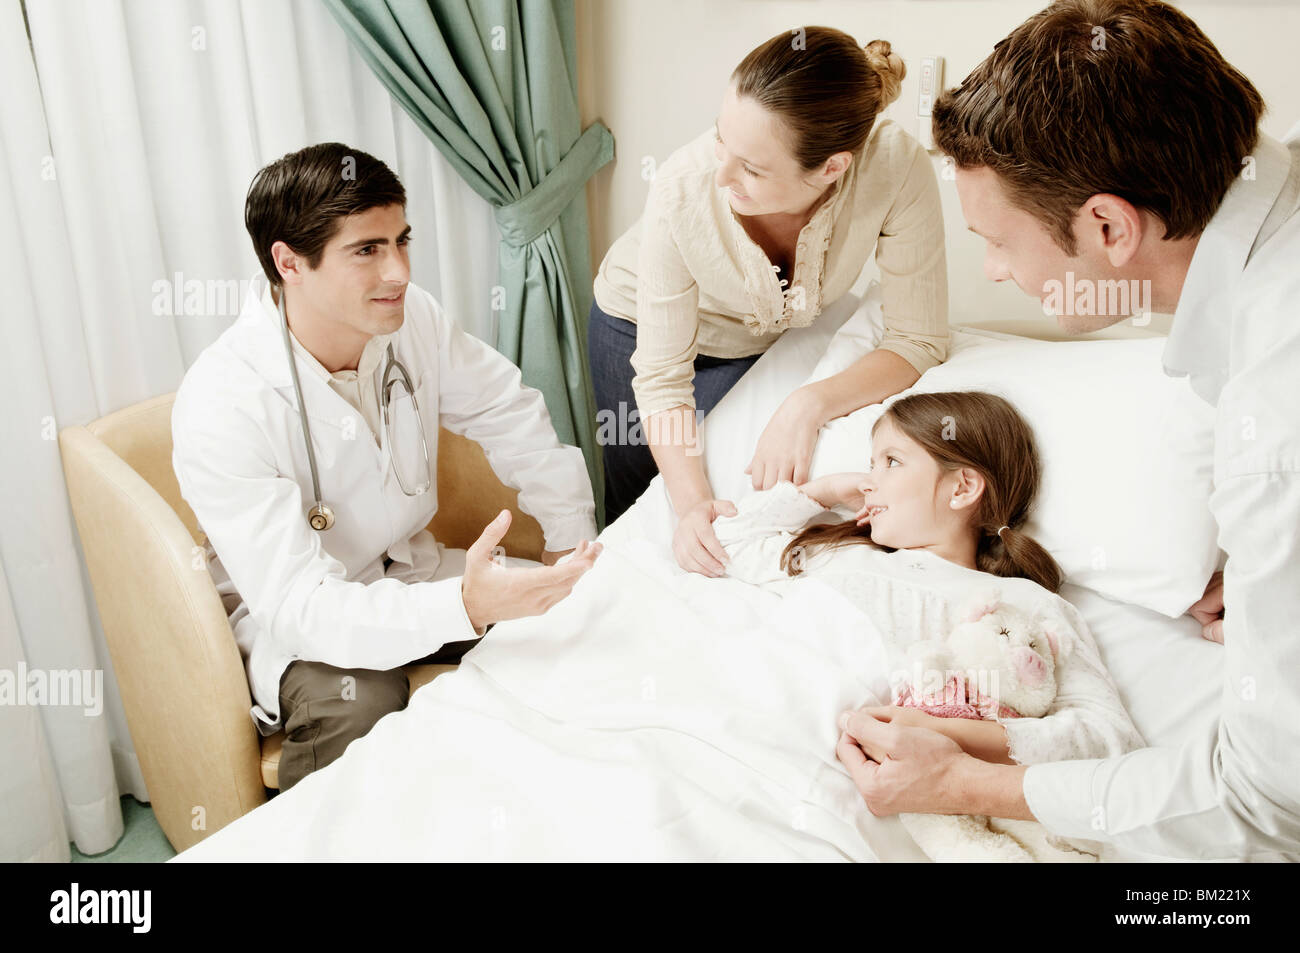 Girl on a hospital bed and her parents discussing with a doctor - Stock Image